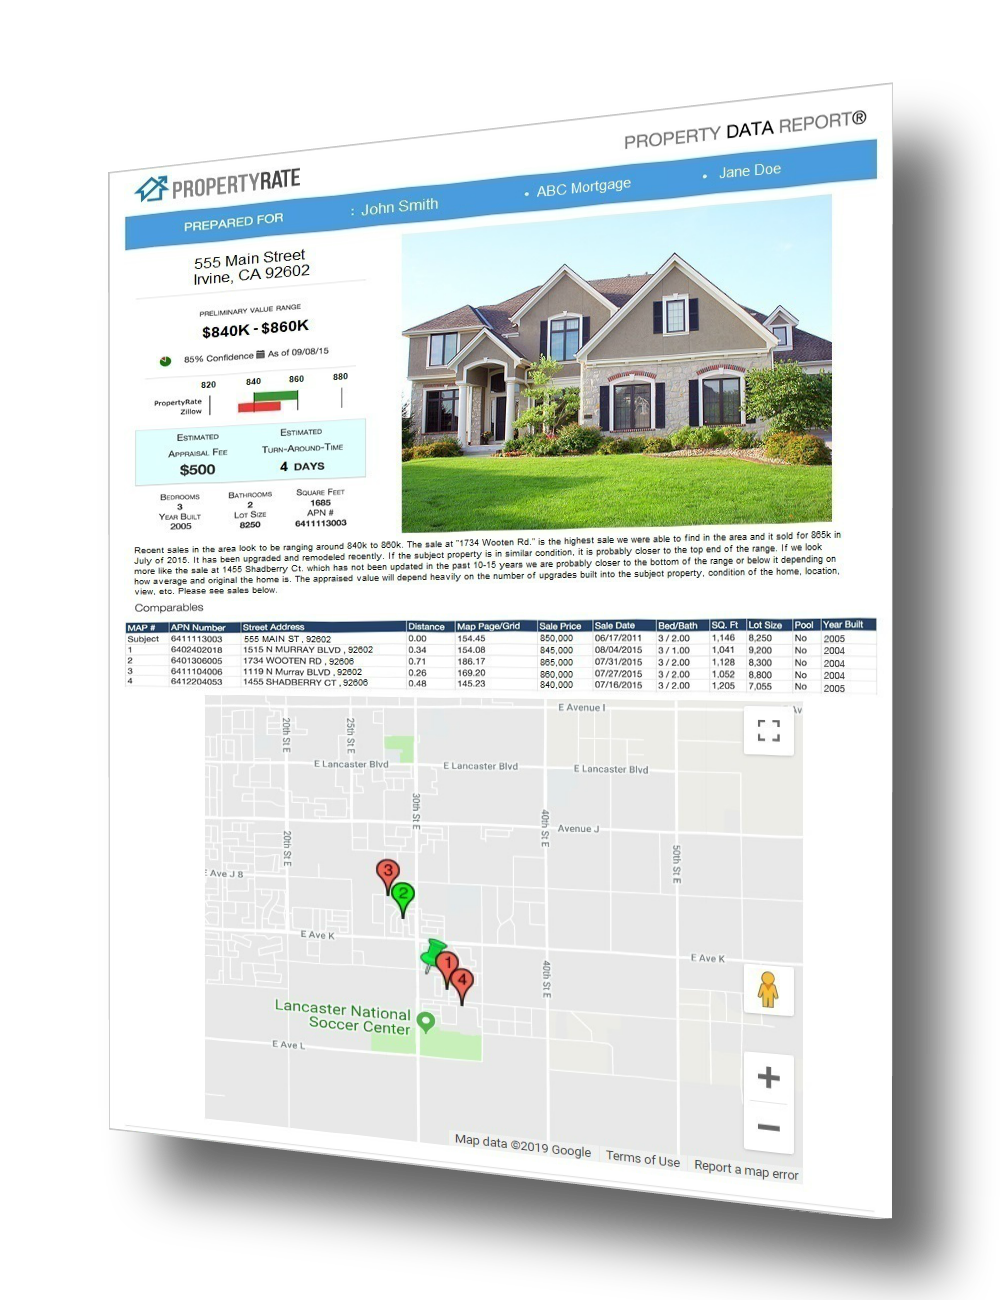 PropertyRate Data Report